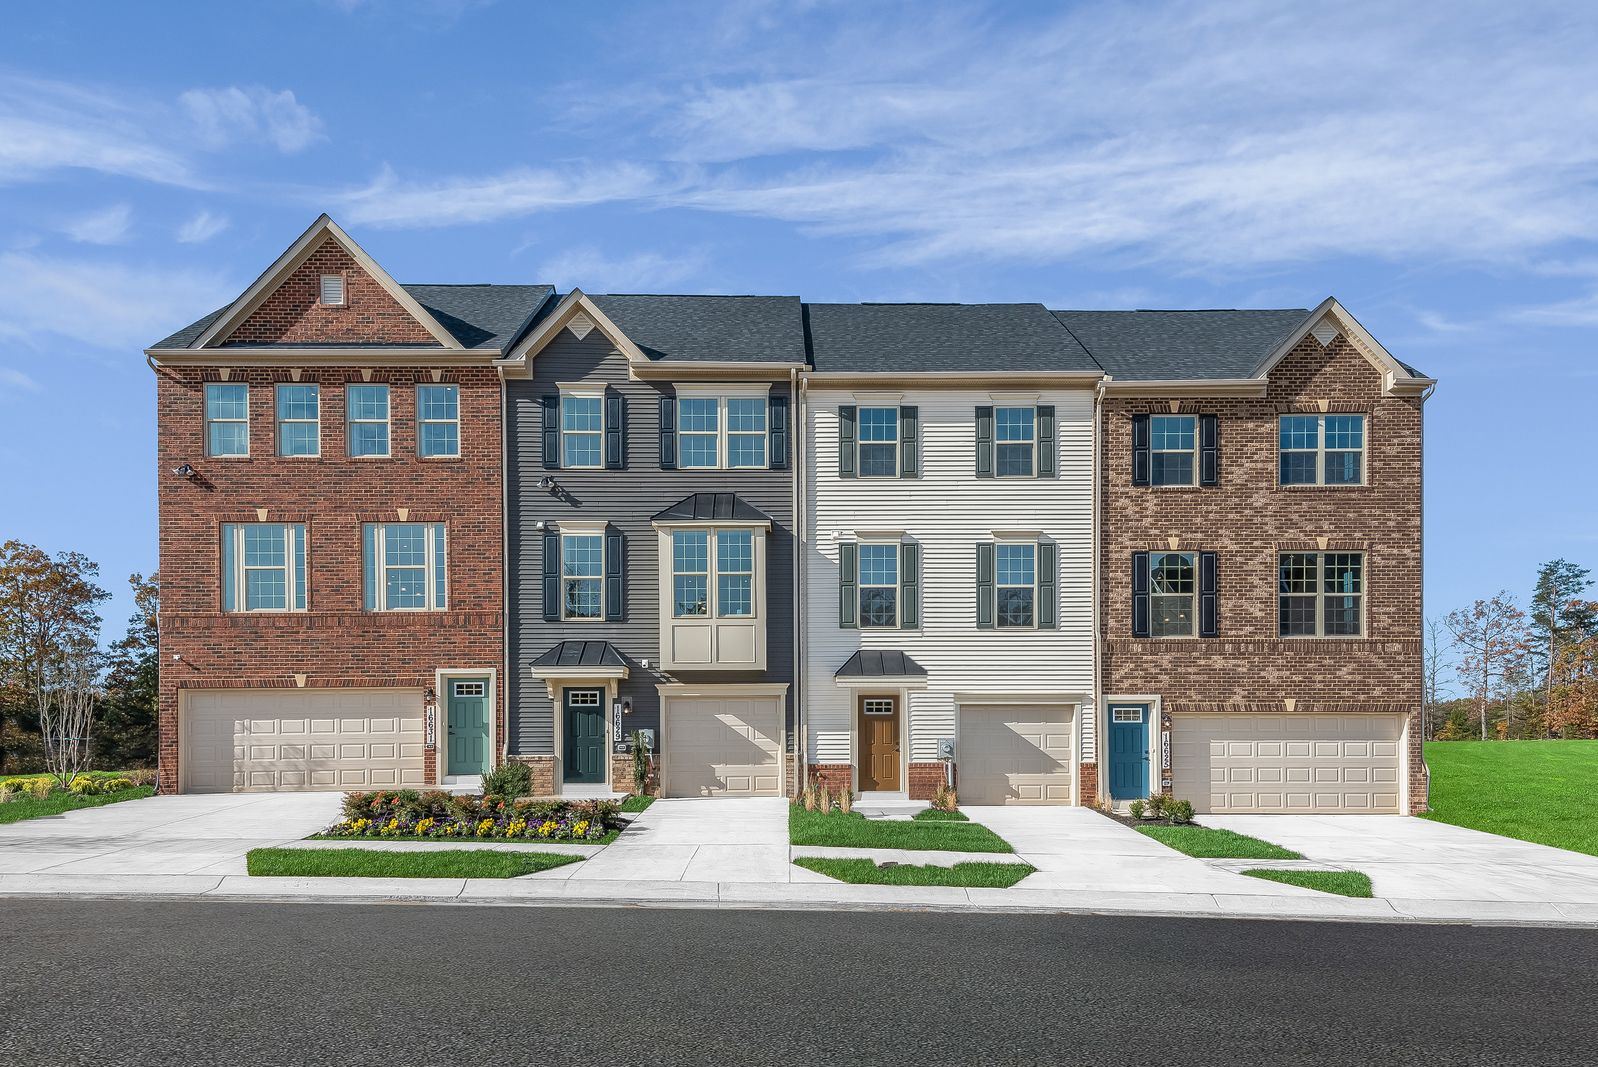 WELCOME TO SIGNATURE CLUB IN ACCOKEEK, MD:Own a new garage townhome convenient to Rt. 210 starting from the upper $300s. The next release of homesites are coming soon!Join the VIP List.to get the latest updates.